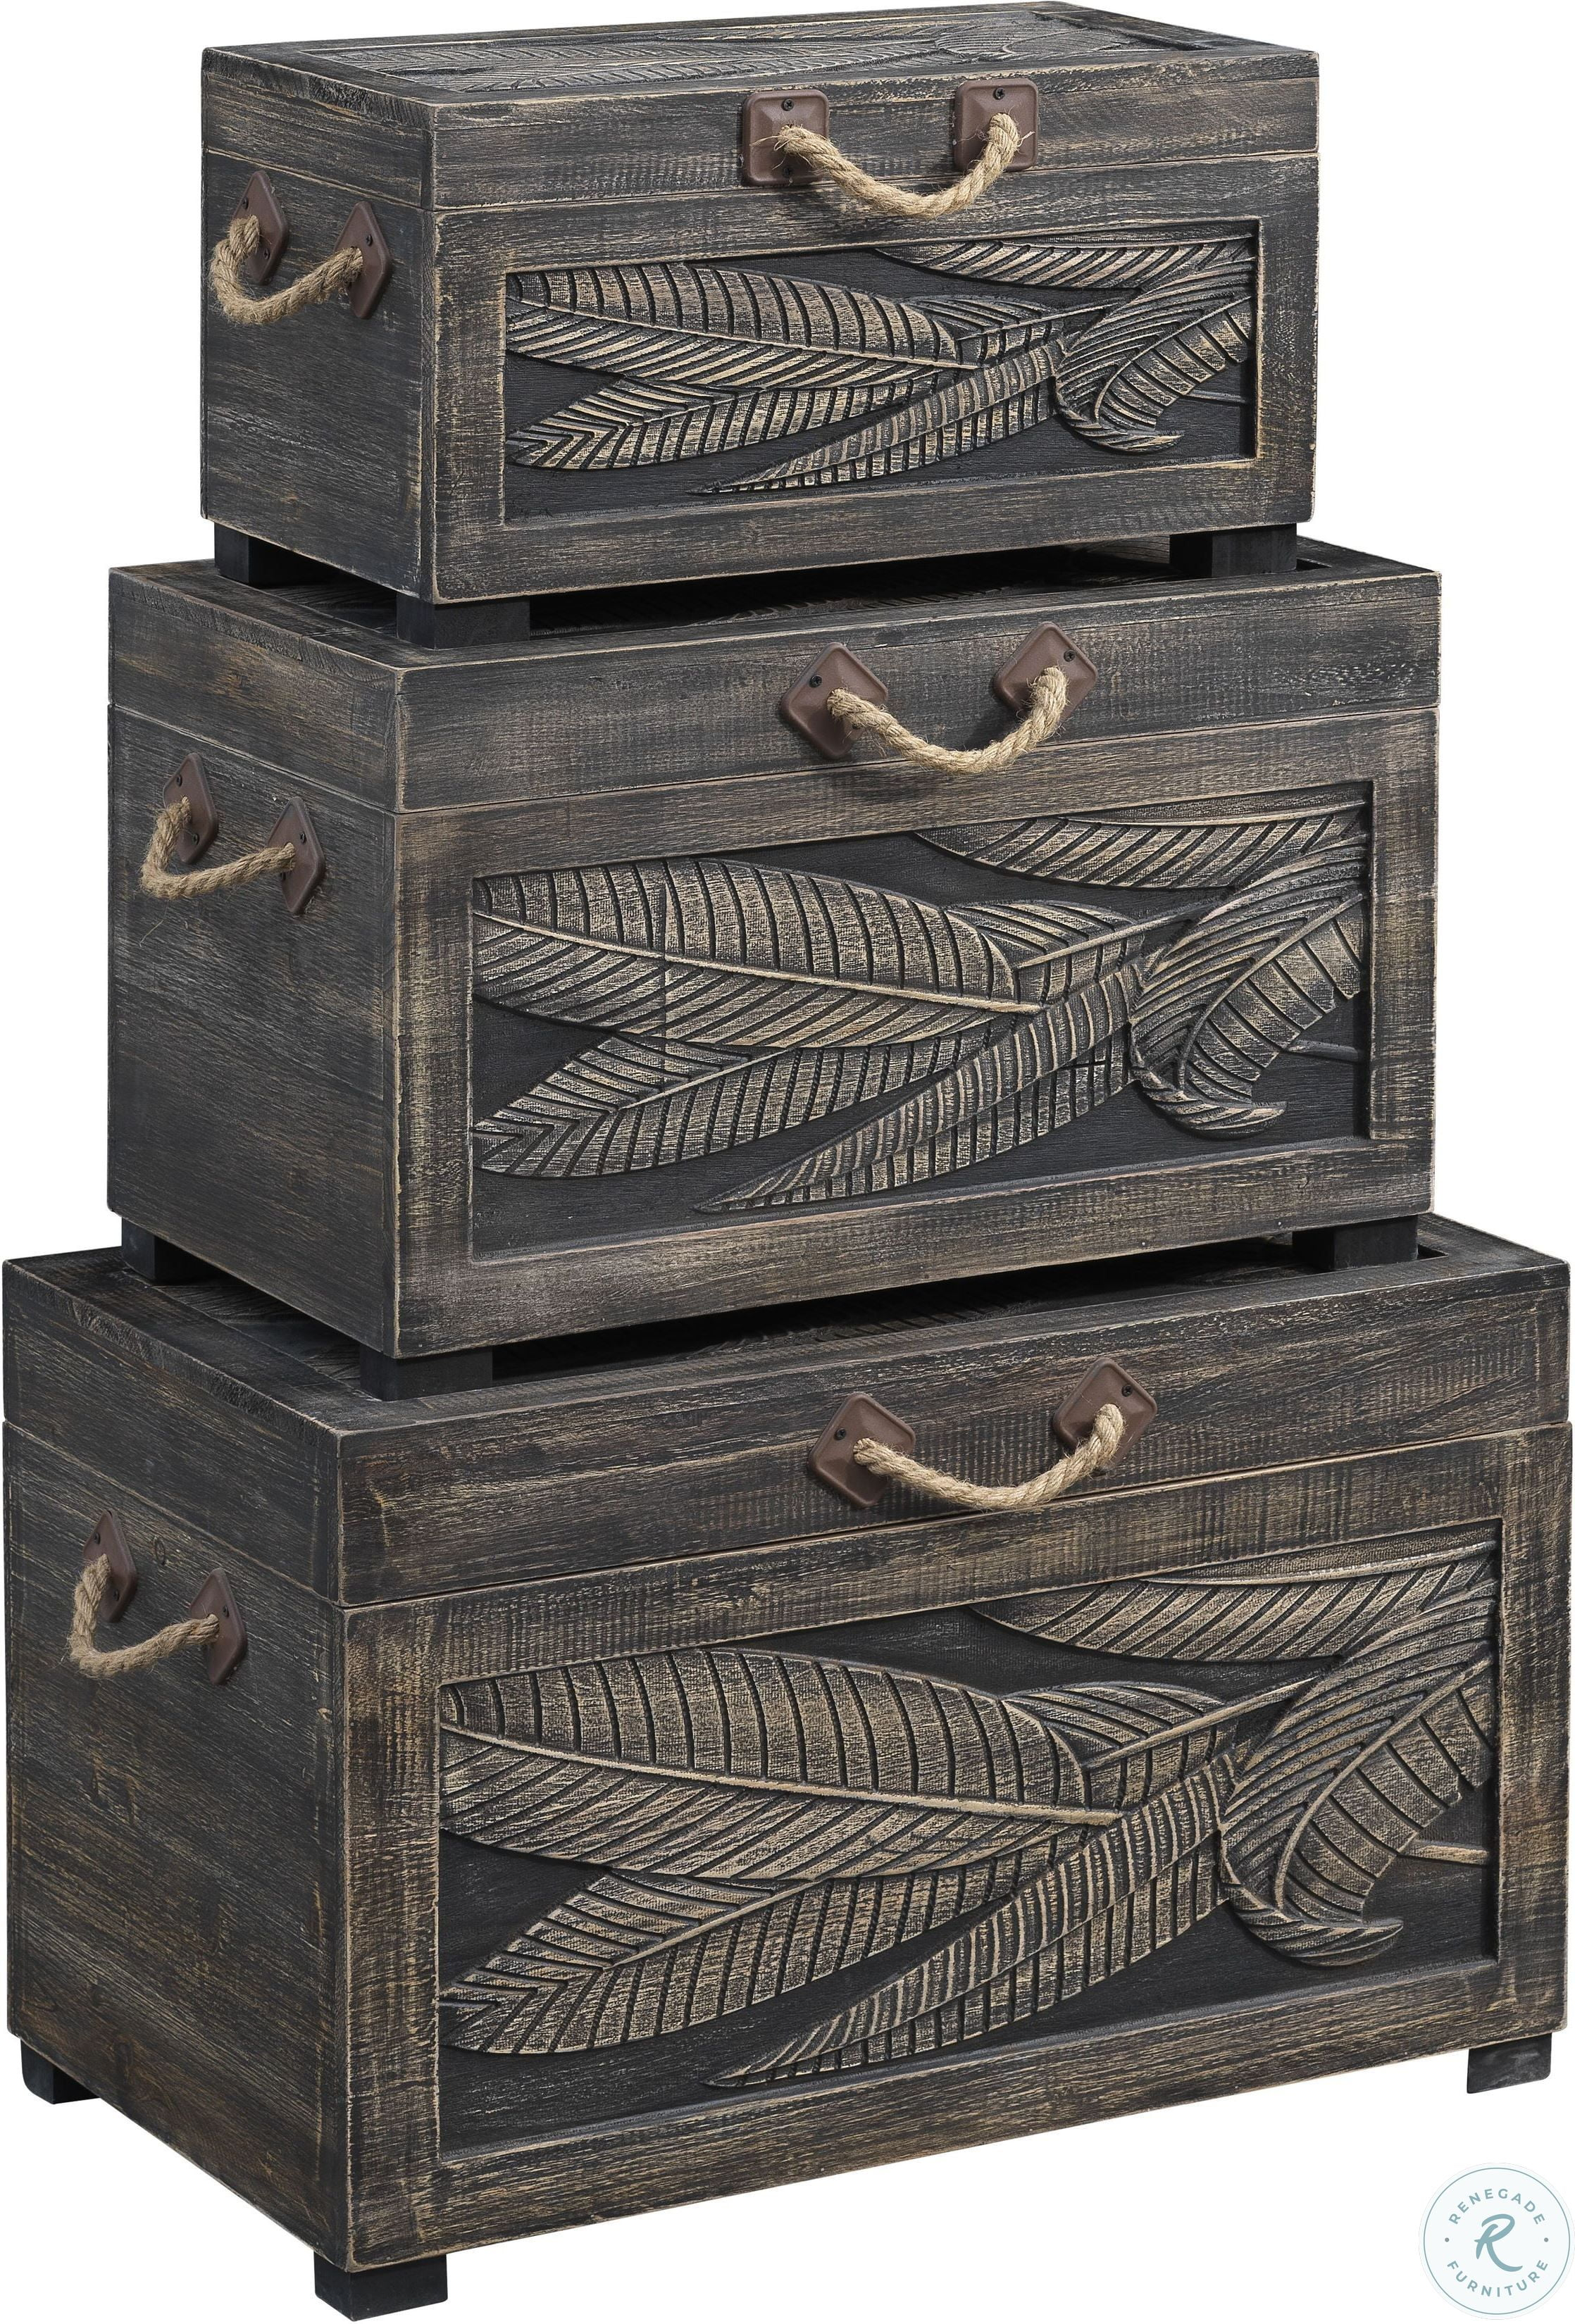 48144 3-Piece Nesting Trunks $399.99